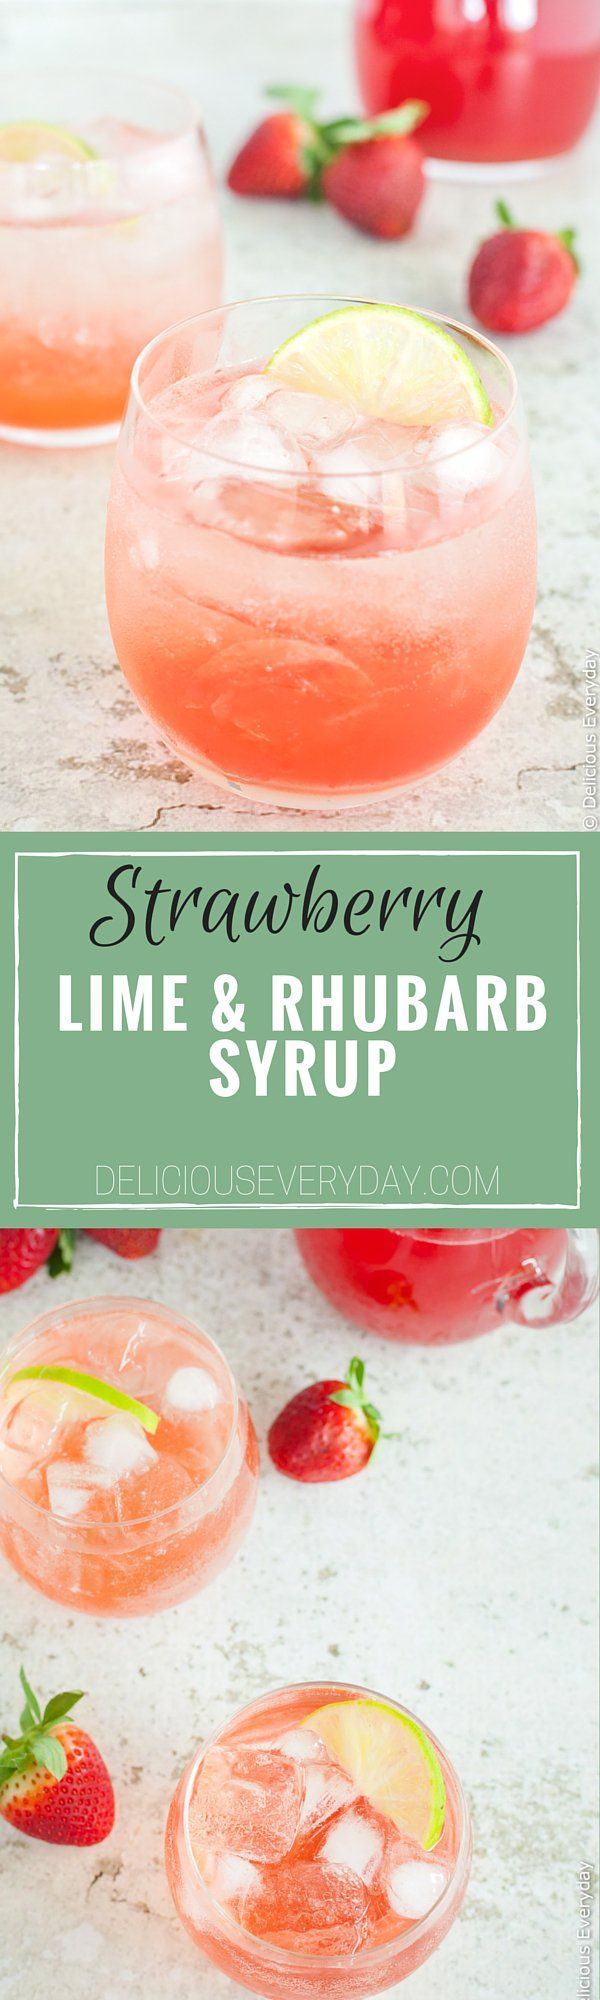 rhubarb and lime. Add this gorgeous strawberry, lime and rhubarb syrup ...